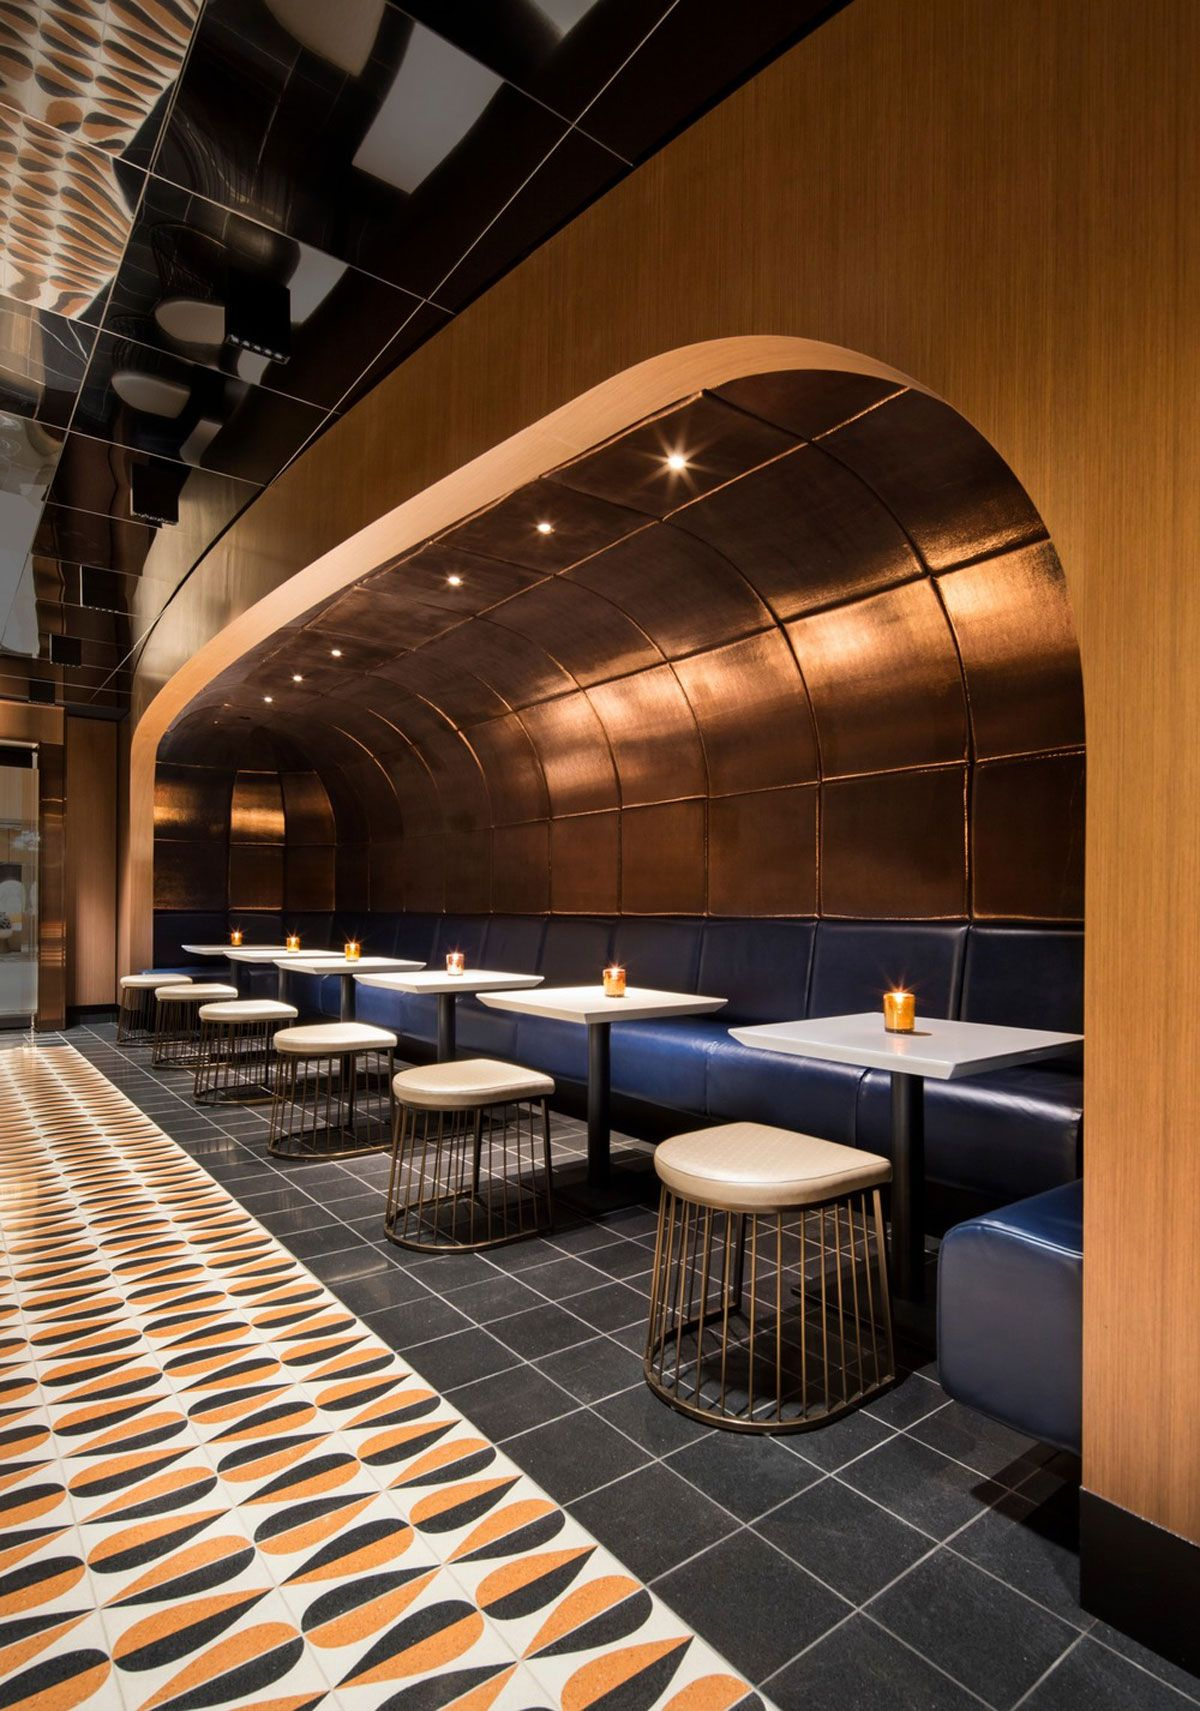 The Transformation of Fairmont The Queen Elizabeth Hotel, as Seen by its Designers